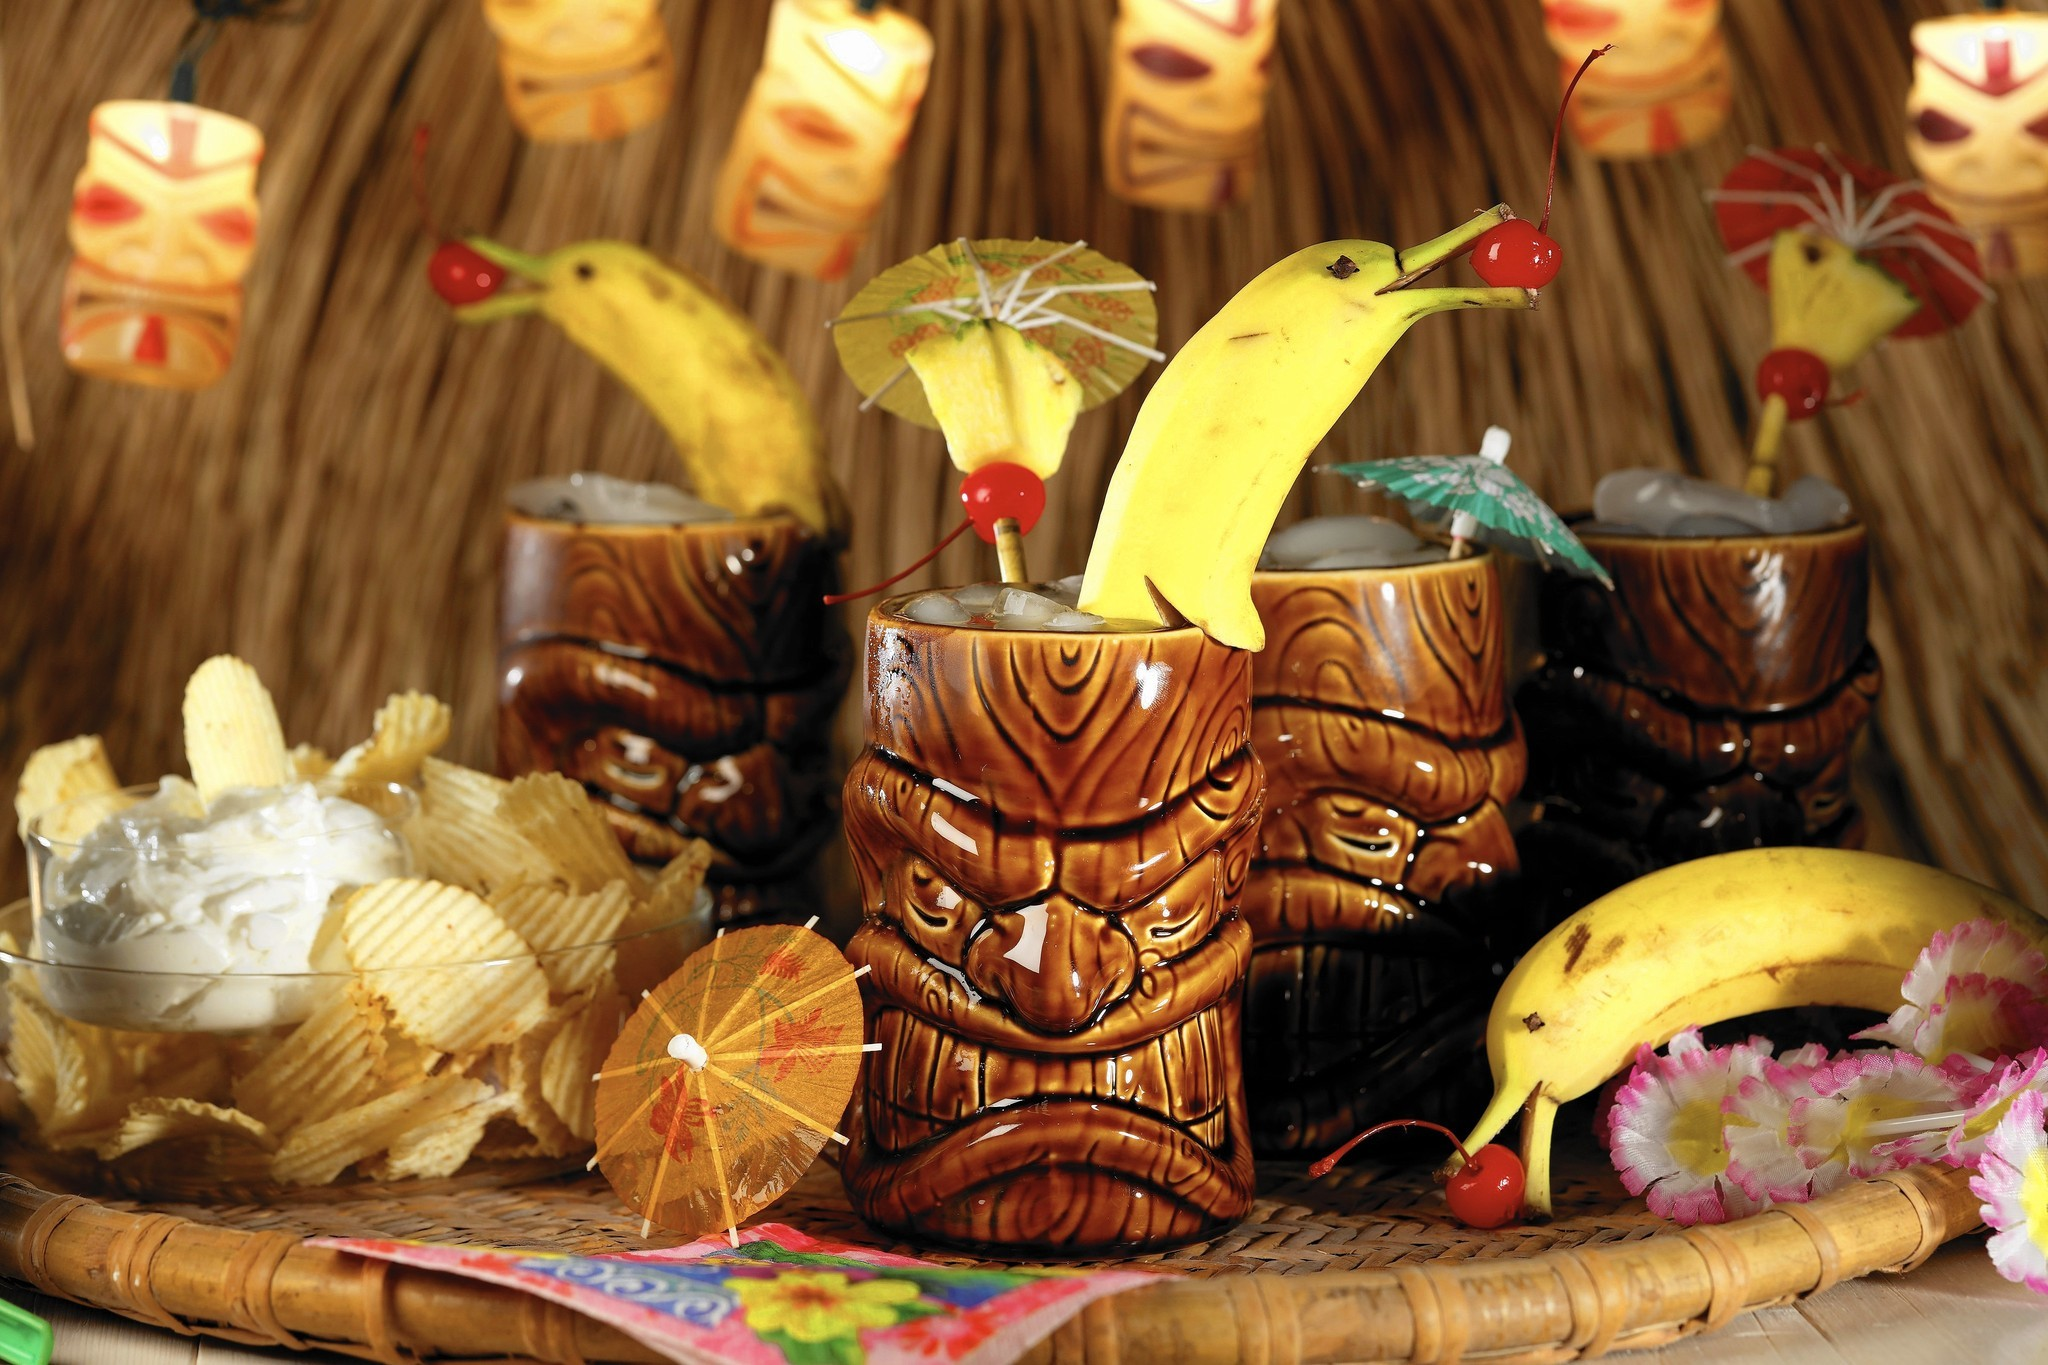 Bring The Tiki Party Home With Easy Drink Recipes